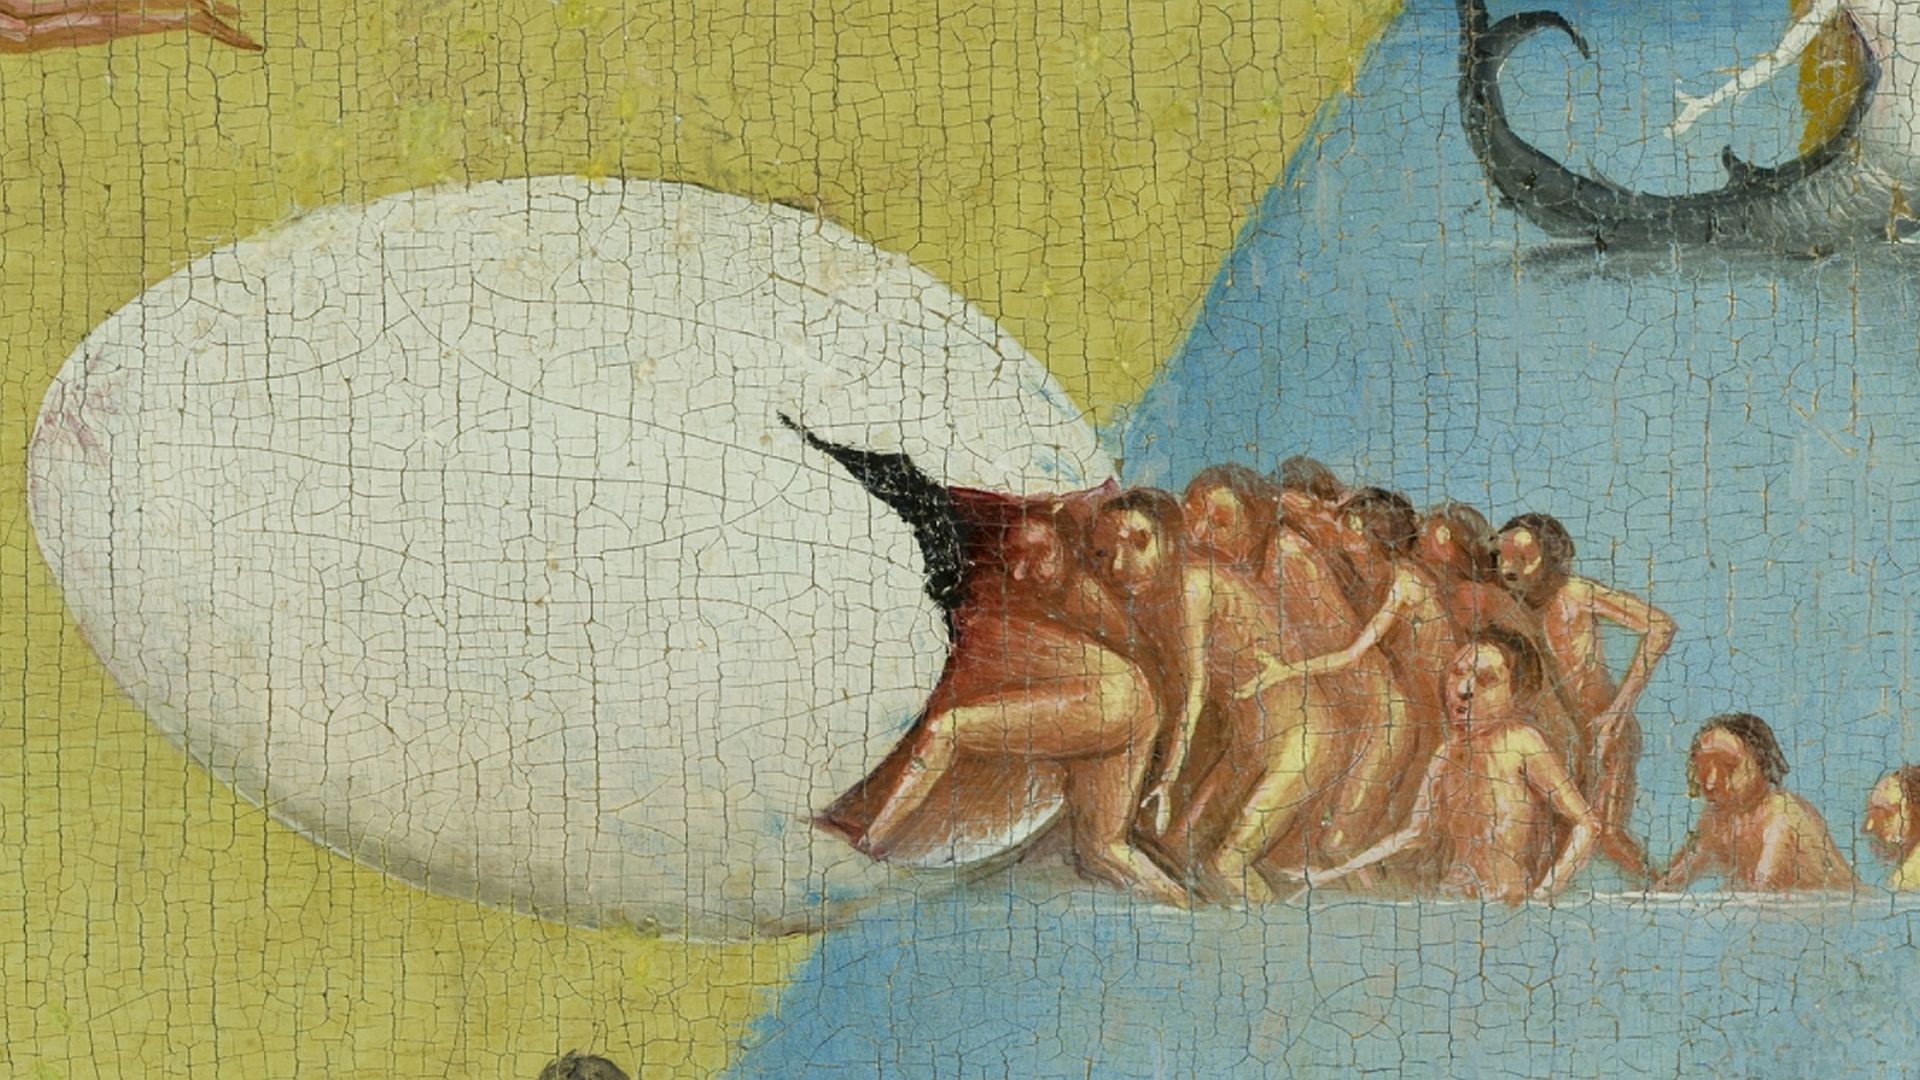 Bosch,_Hieronymus_-_The_Garden_of_Earthly_Delights,_central_panel_-_Detail_Egg